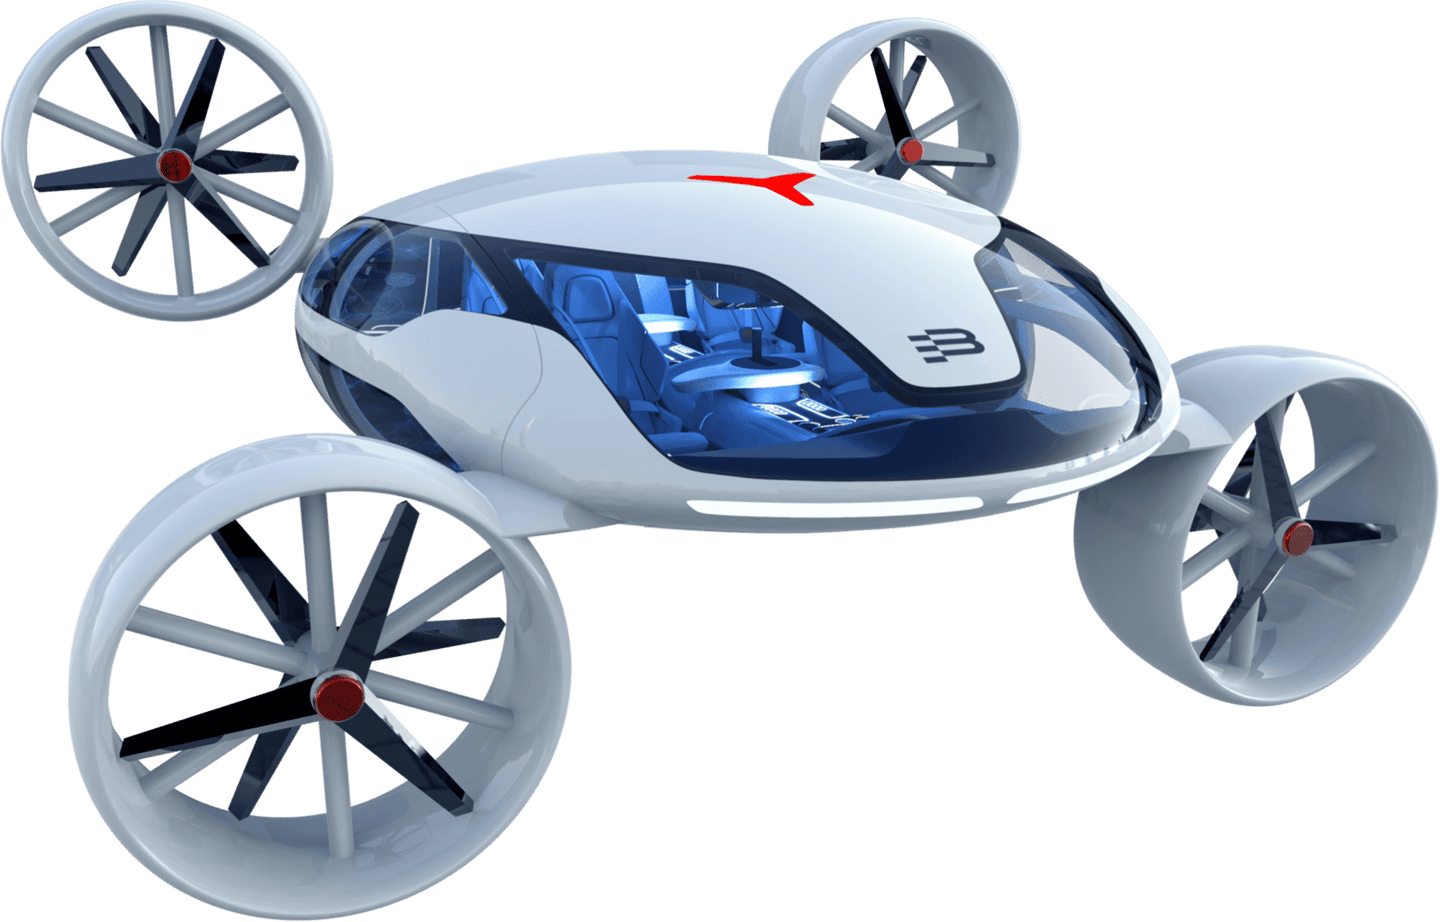 The eVTOL market is threatening to begin commercial flights around 2025, but it's becoming very doubtful that lithium battery technology will have the required energy density by that stage. Hydrogen offers a compelling alternative